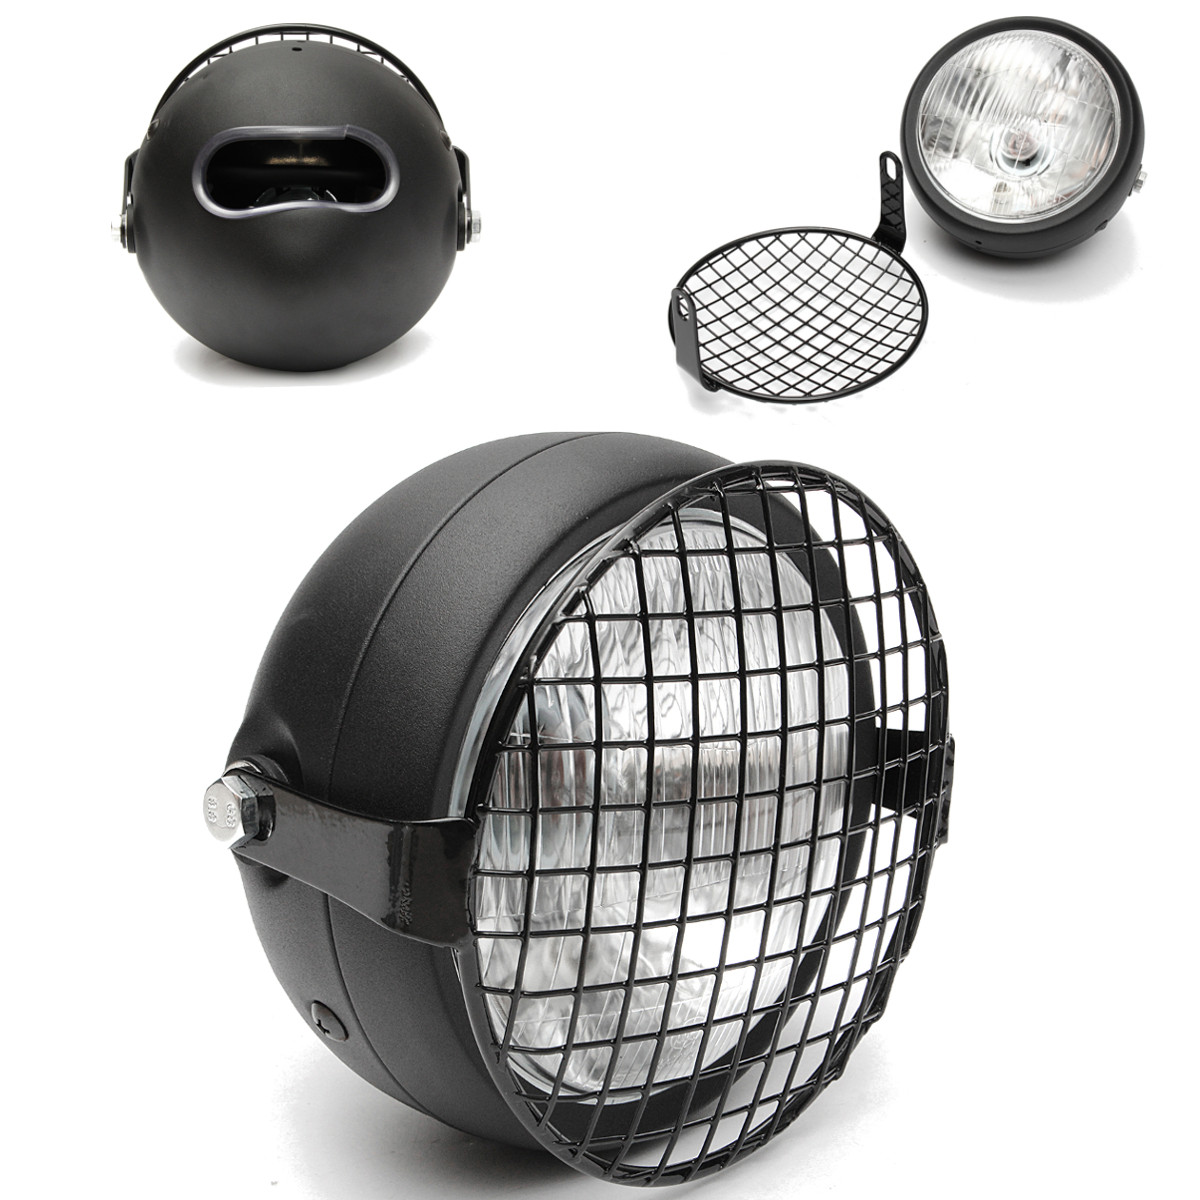 phare moto grille grillge protection noir pour cafe racer bobber old school achat vente. Black Bedroom Furniture Sets. Home Design Ideas